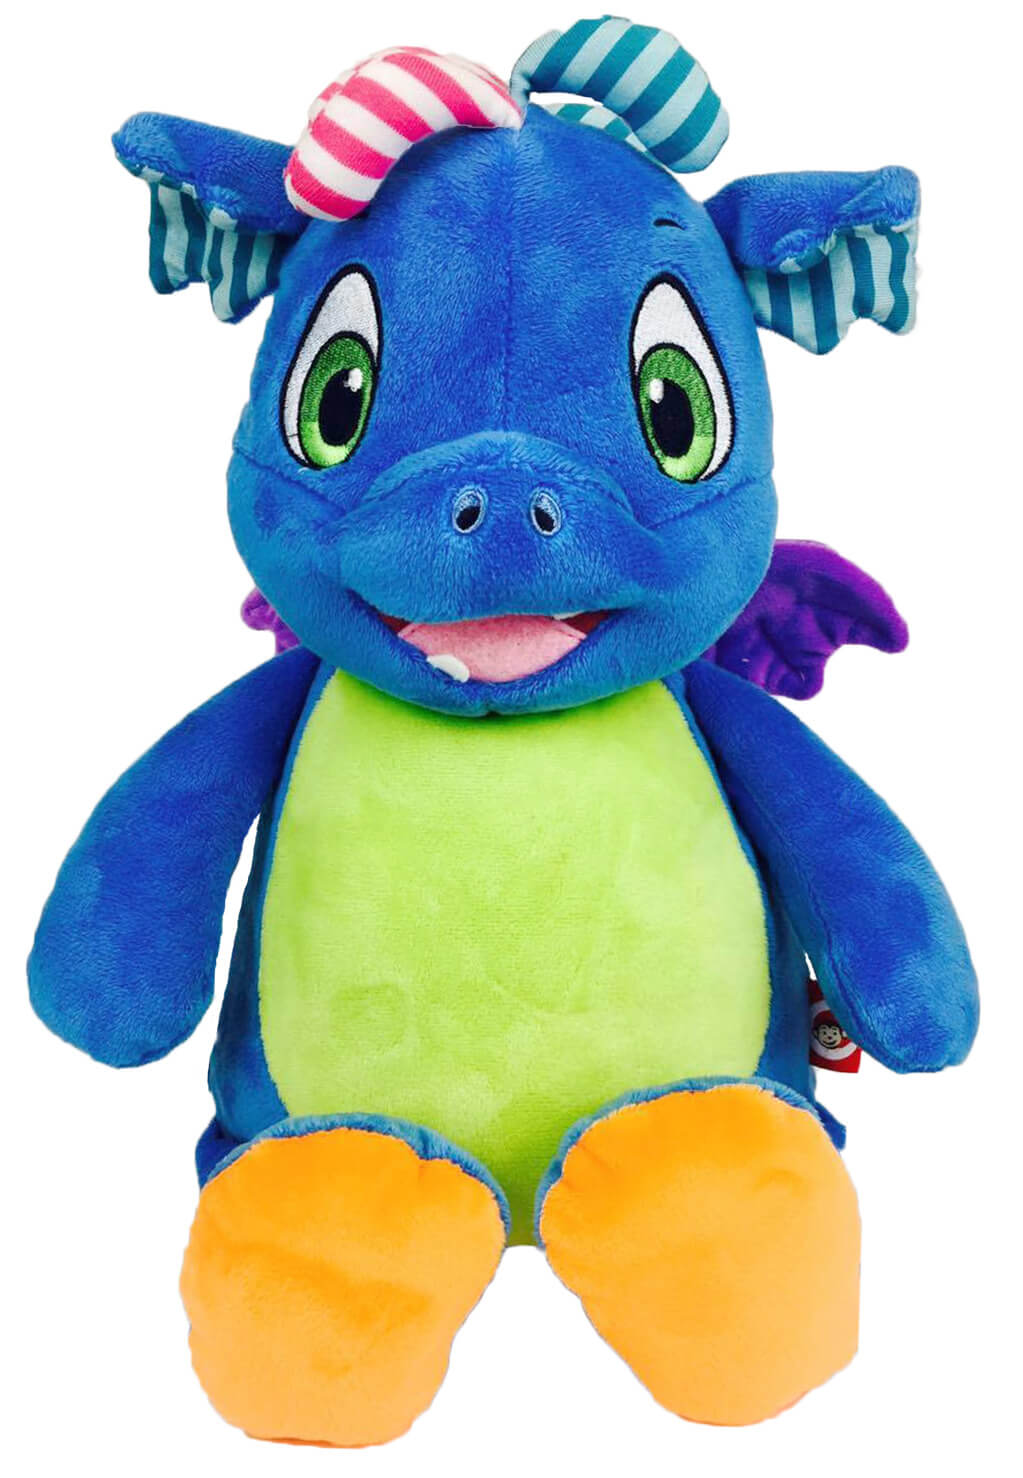 Personalised Teddy - Signature Blue Dragon - D'lighted